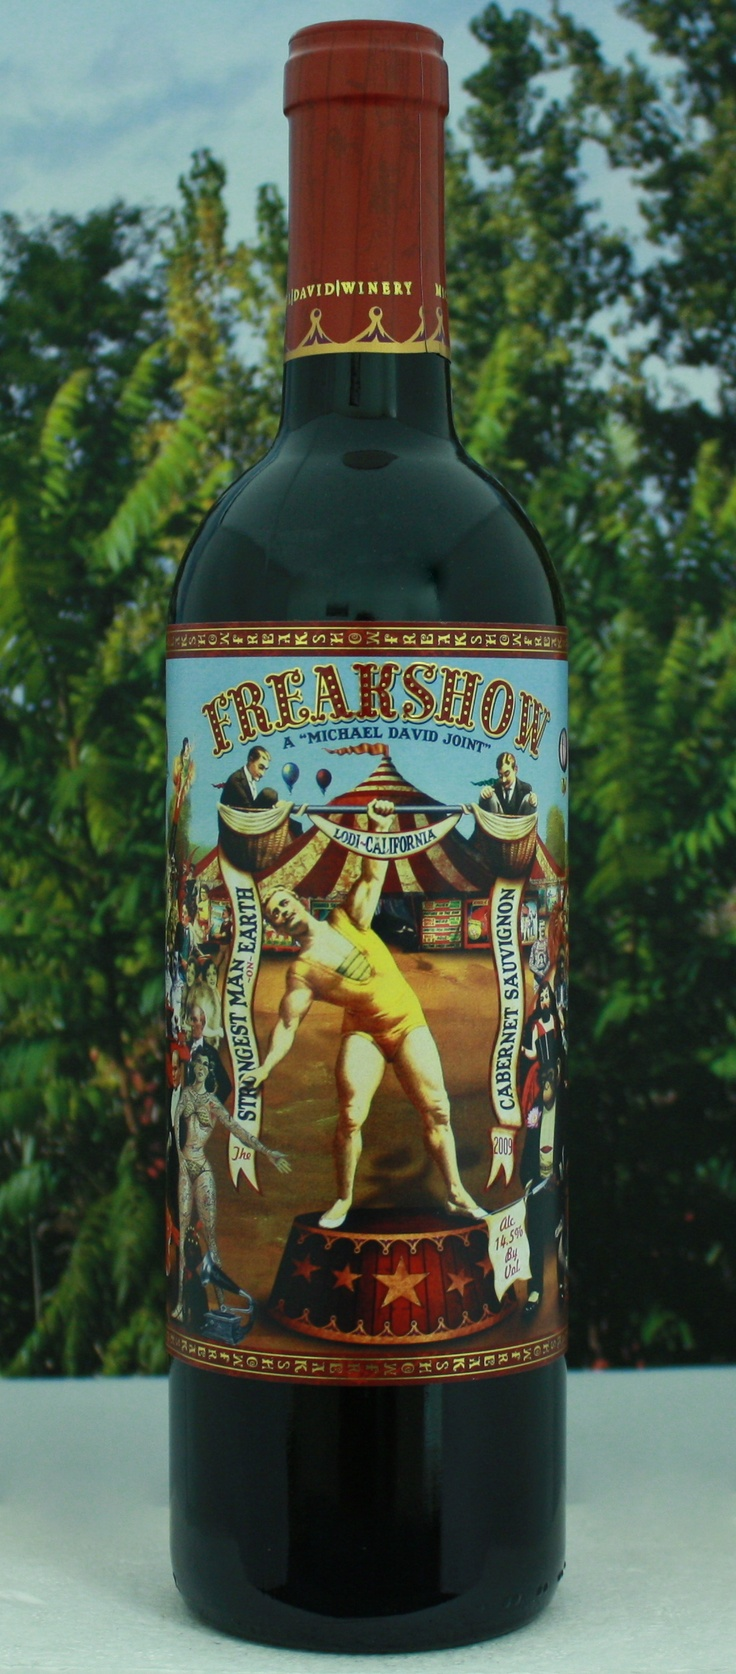 Michael David Winery's Freak Show Cabernet Sauvignon - The fruit for this brute of a Cab comes from the original 'super freak' Michael Phillips vineyard located only a medicine balls toss from the winery. Pound for pound our Cab over delivers, with a bouquet of dark cherry, blackberry, and roasted spices. Full bodied and mouth filling with gobs of dark berry fruit, charred oak, vanilla and cassis with dusty tannins and a lasting finish. - Winery $18.23